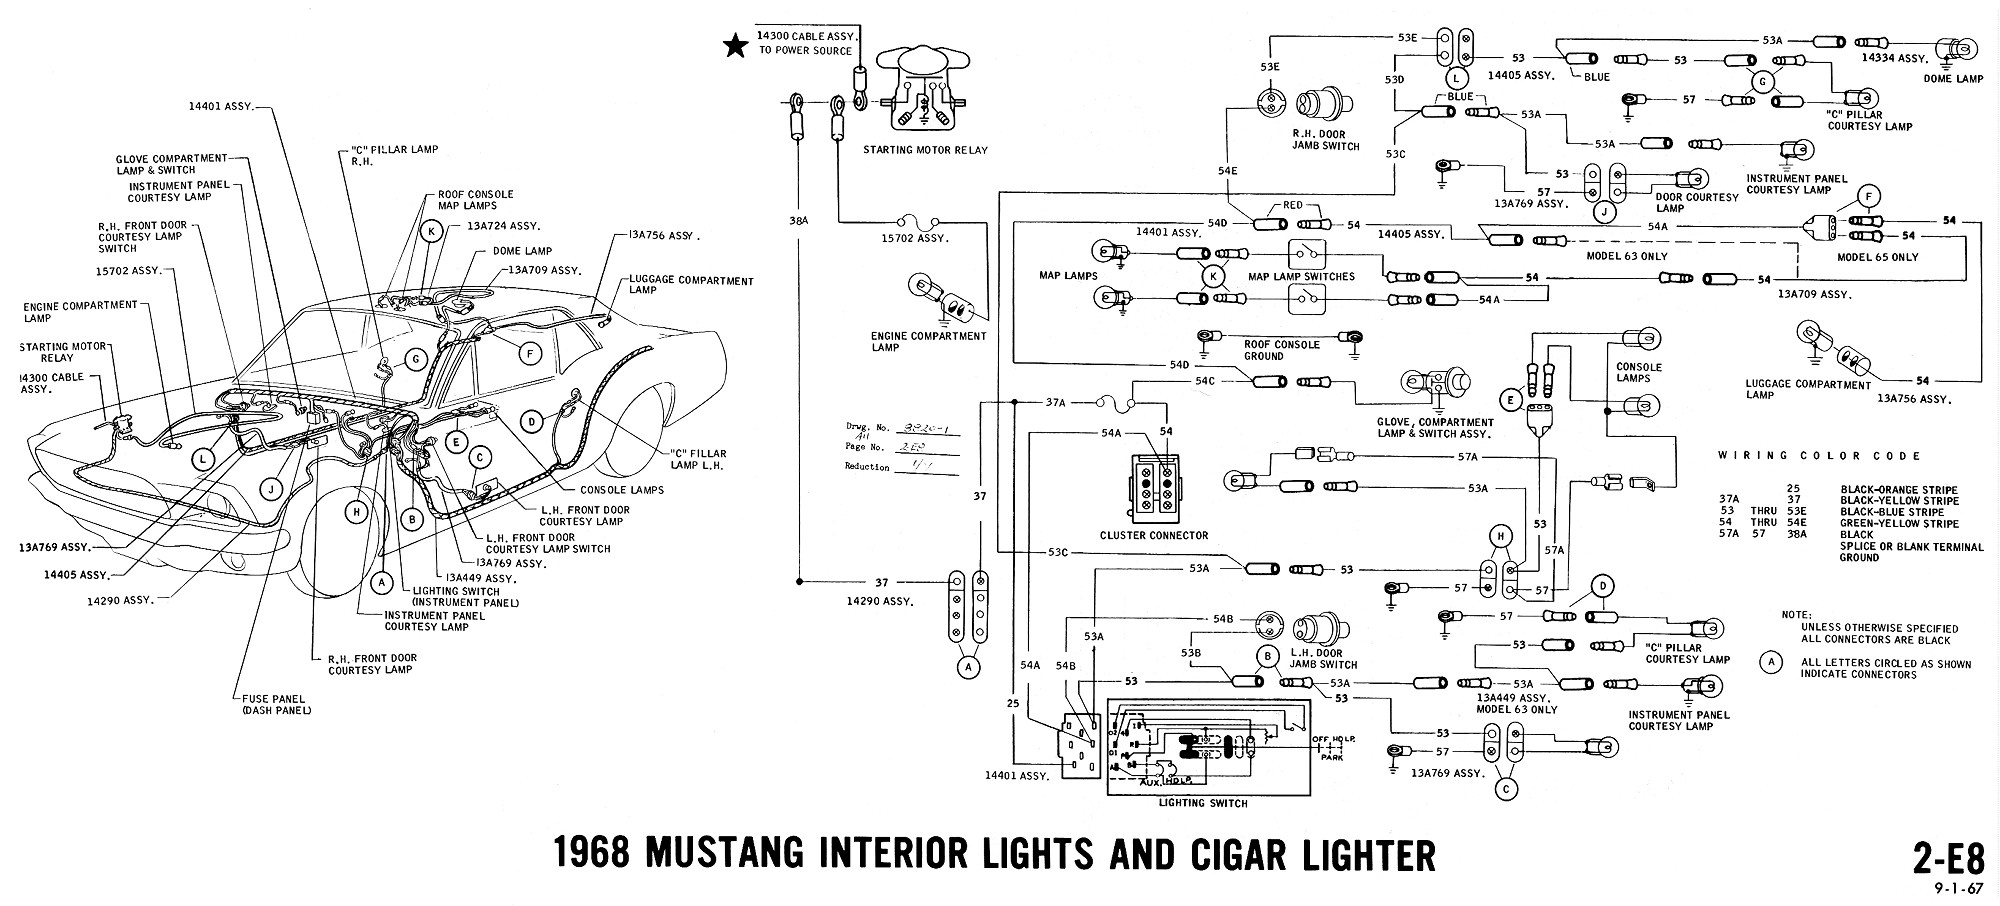 1968 Mustang Wiring Diagram Vacuum Schematics on 2000 ford mustang stereo wiring diagram